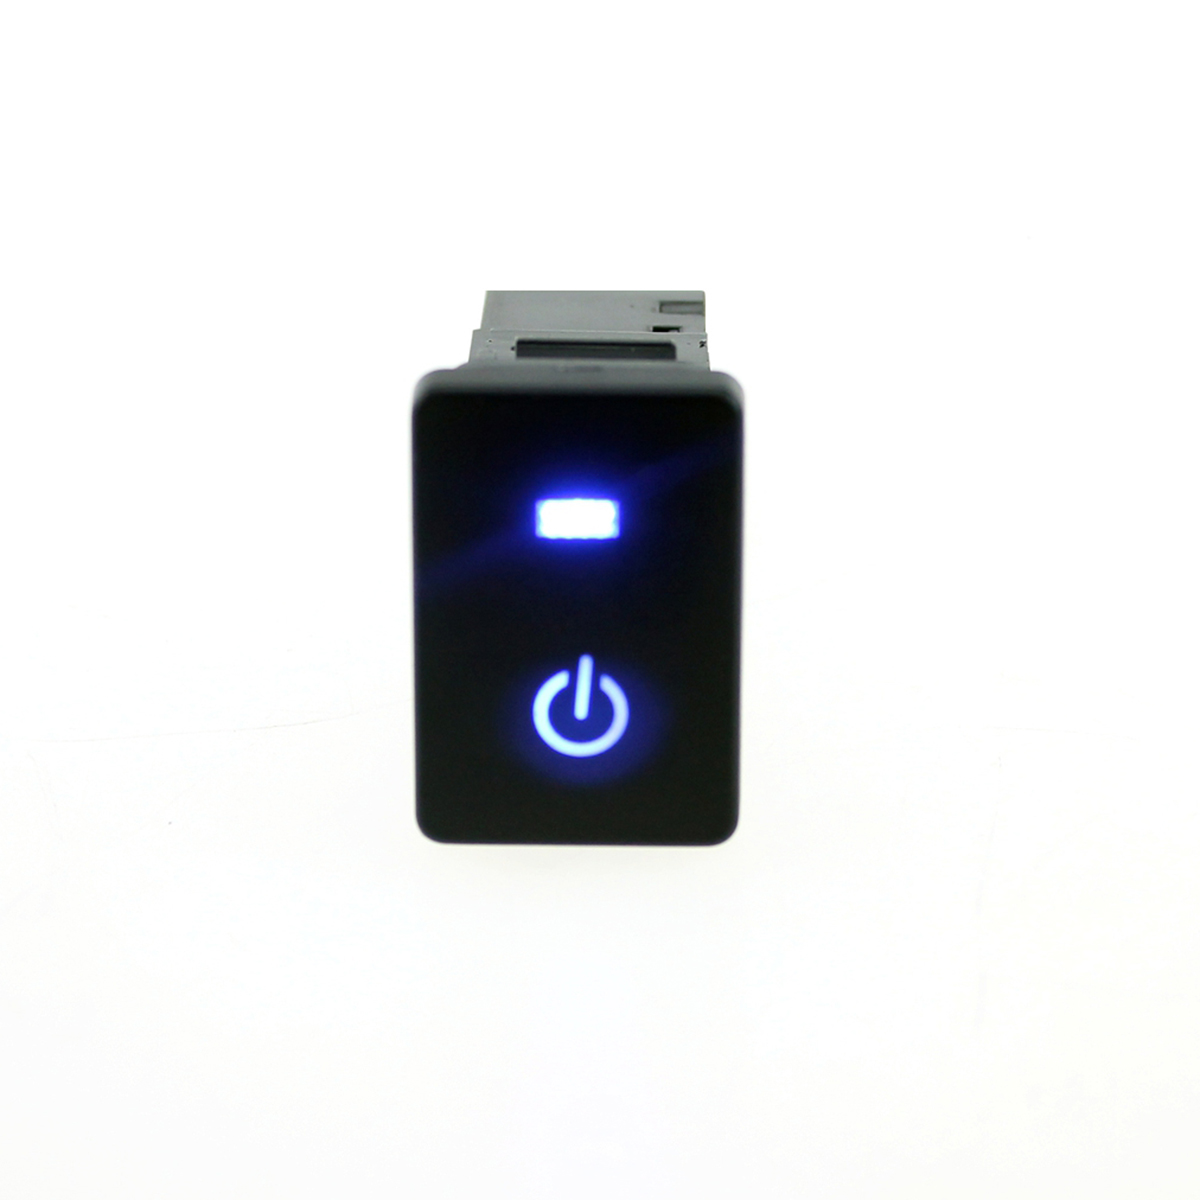 12V Car Switch Starting Pattern Push Button with 15cm Cable for <font><b>Toyota</b></font> Camry Yaris <font><b>Corolla</b></font> Vios Reiz Prado - Blue Light image